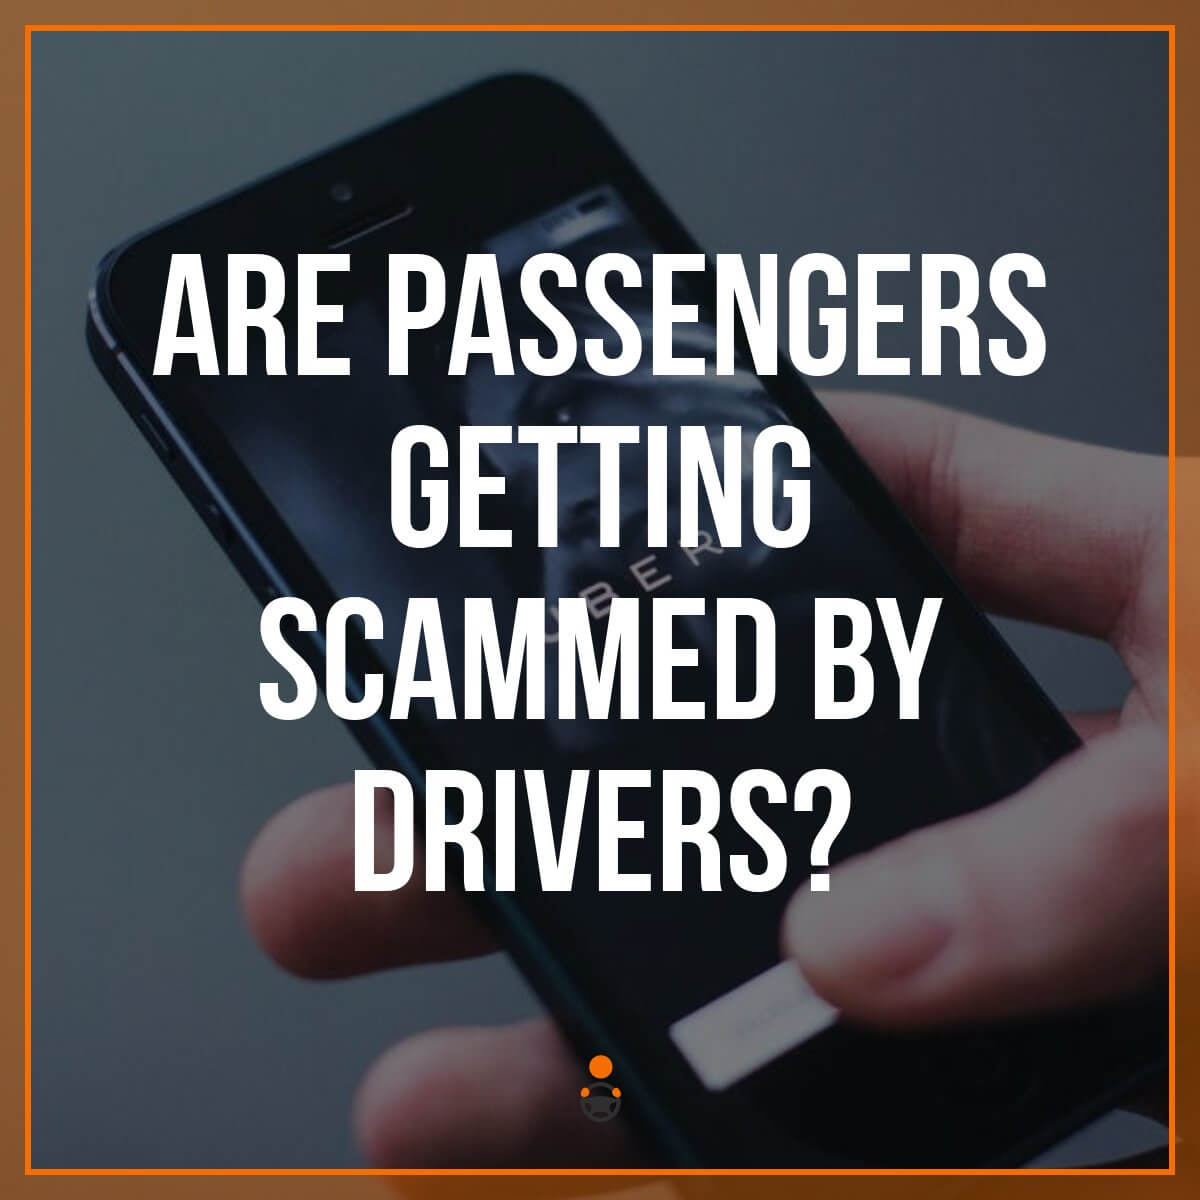 Are Uber passengers being scammed by drivers, or are the issues between drivers and passengers just a symptom of low fares and low driver pay? Senior RSG contributor John Ince tackles that question, plus addresses new lawsuits around the world and more, in this week's round up.